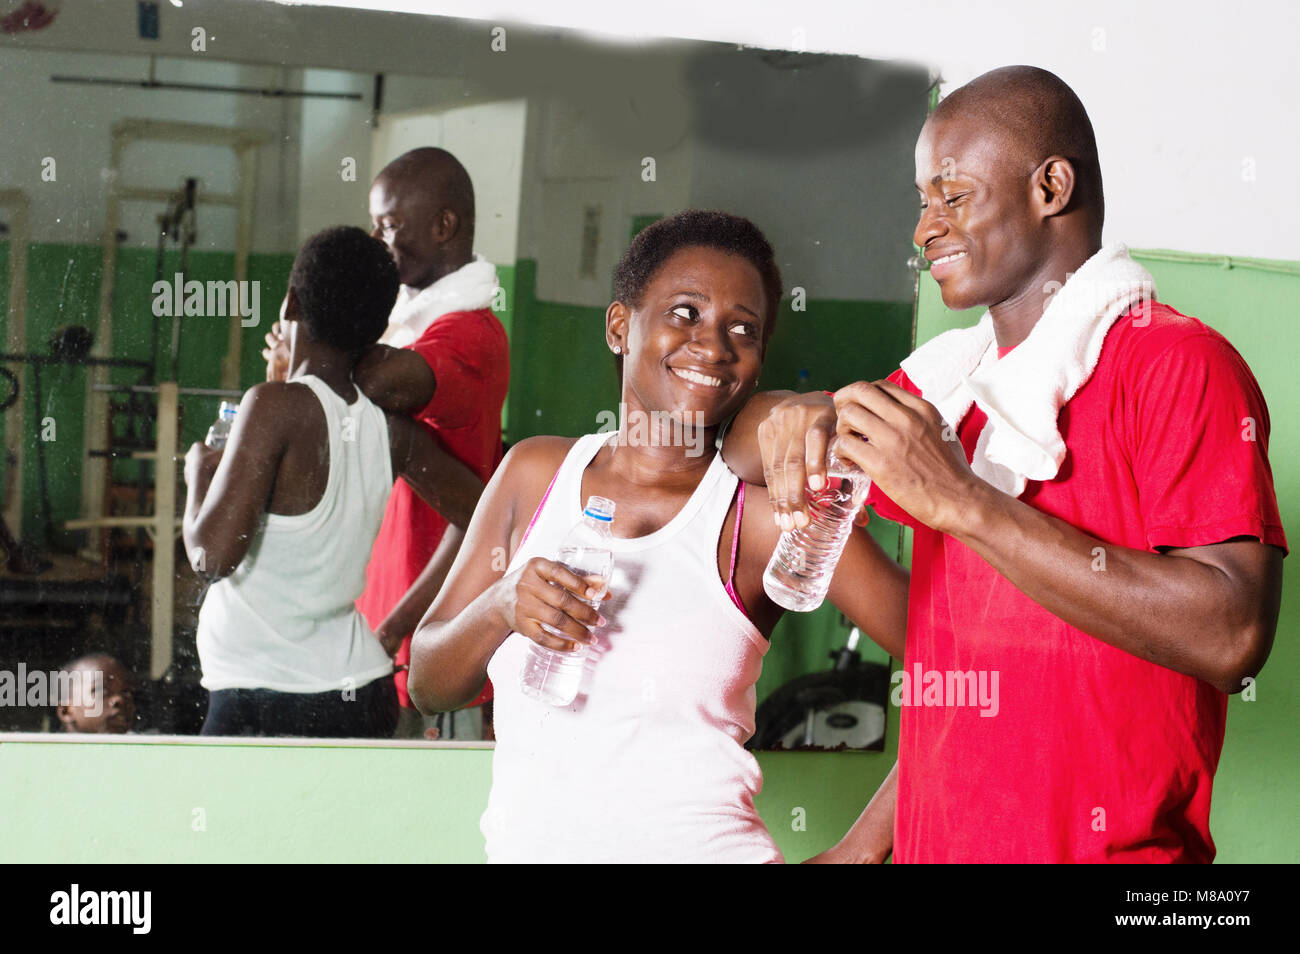 Young woman and her coach look at each other smiling with bottles of water in hand. - Stock Image